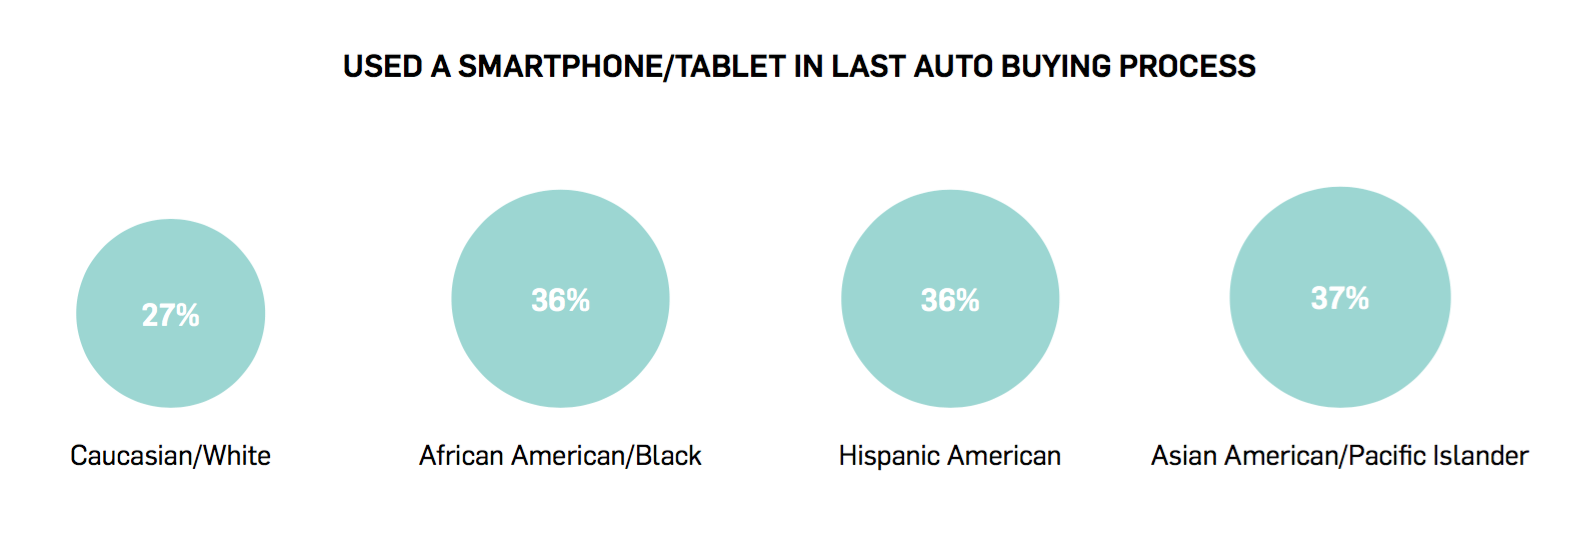 Smartphone Use in Auto Buying